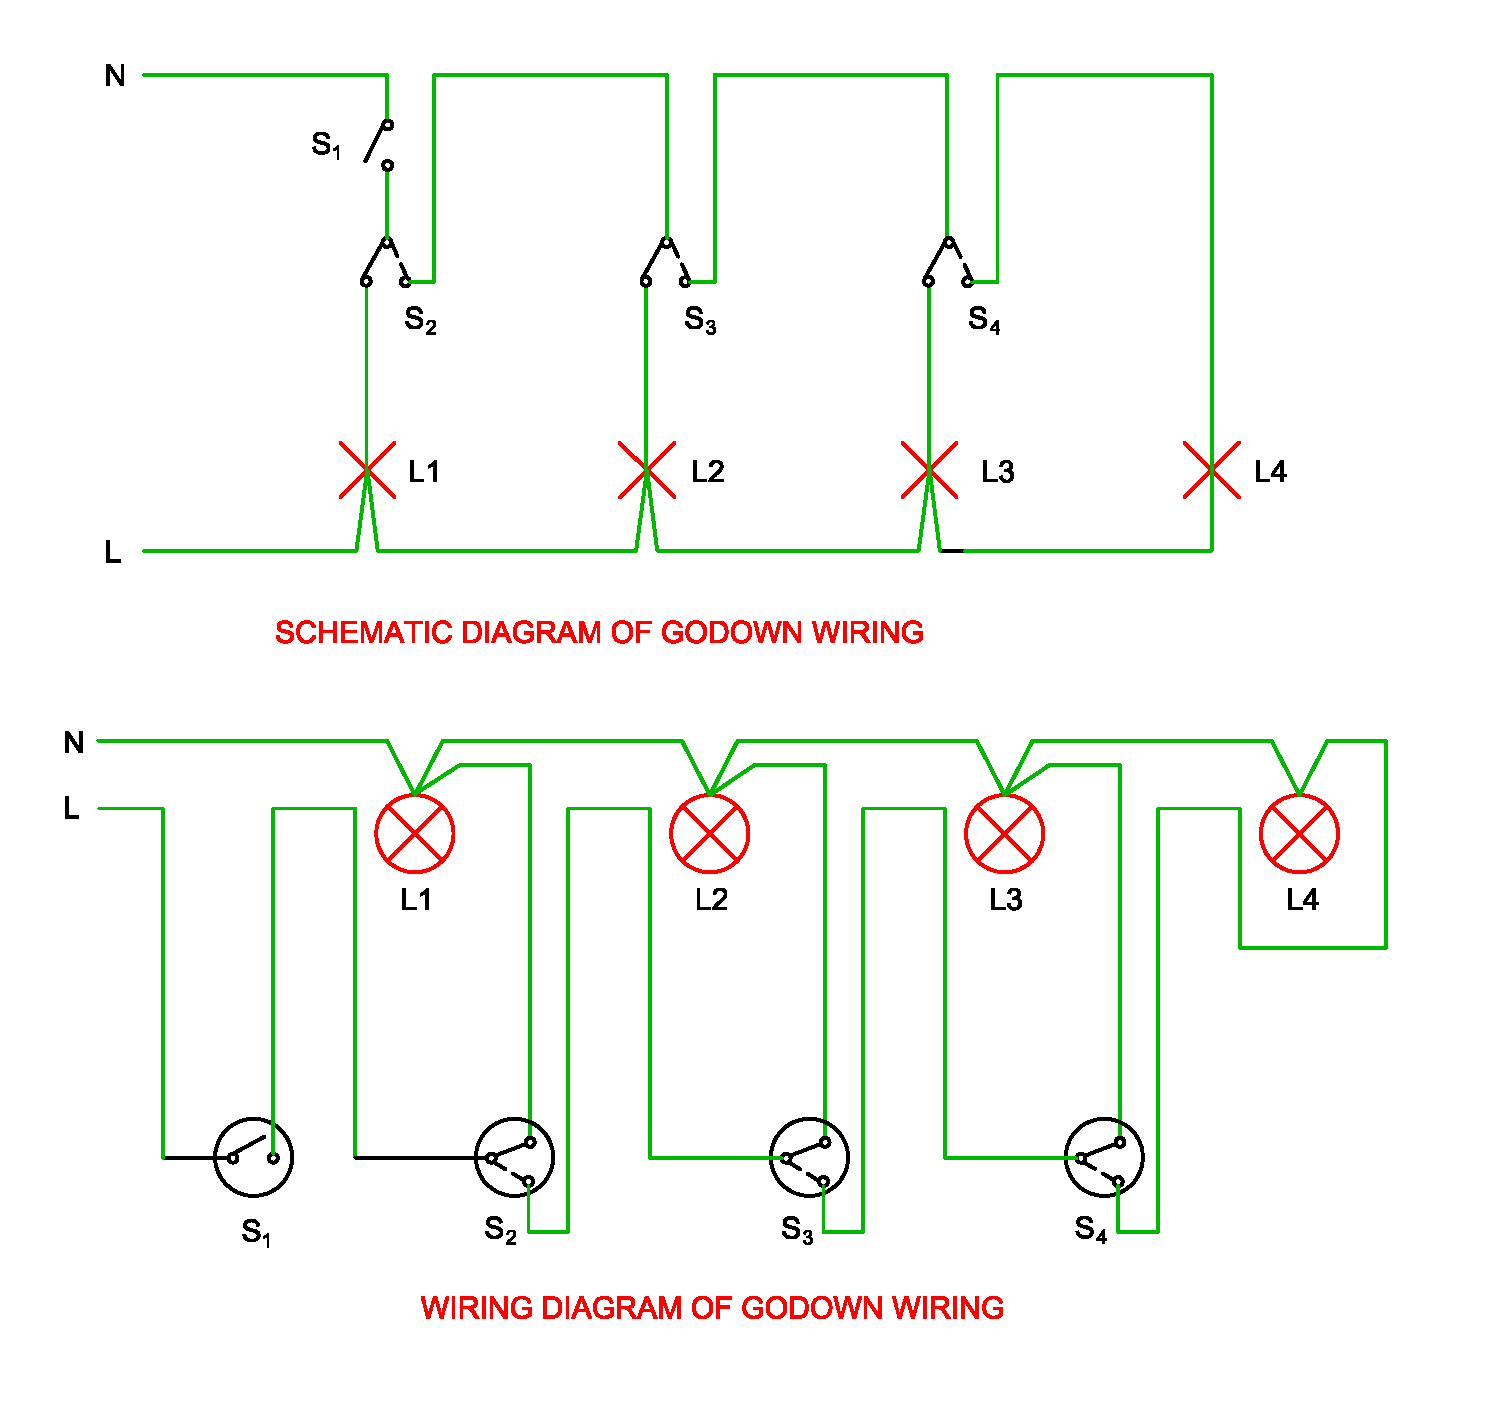 small resolution of schematic and wiring diagram of go down wiring